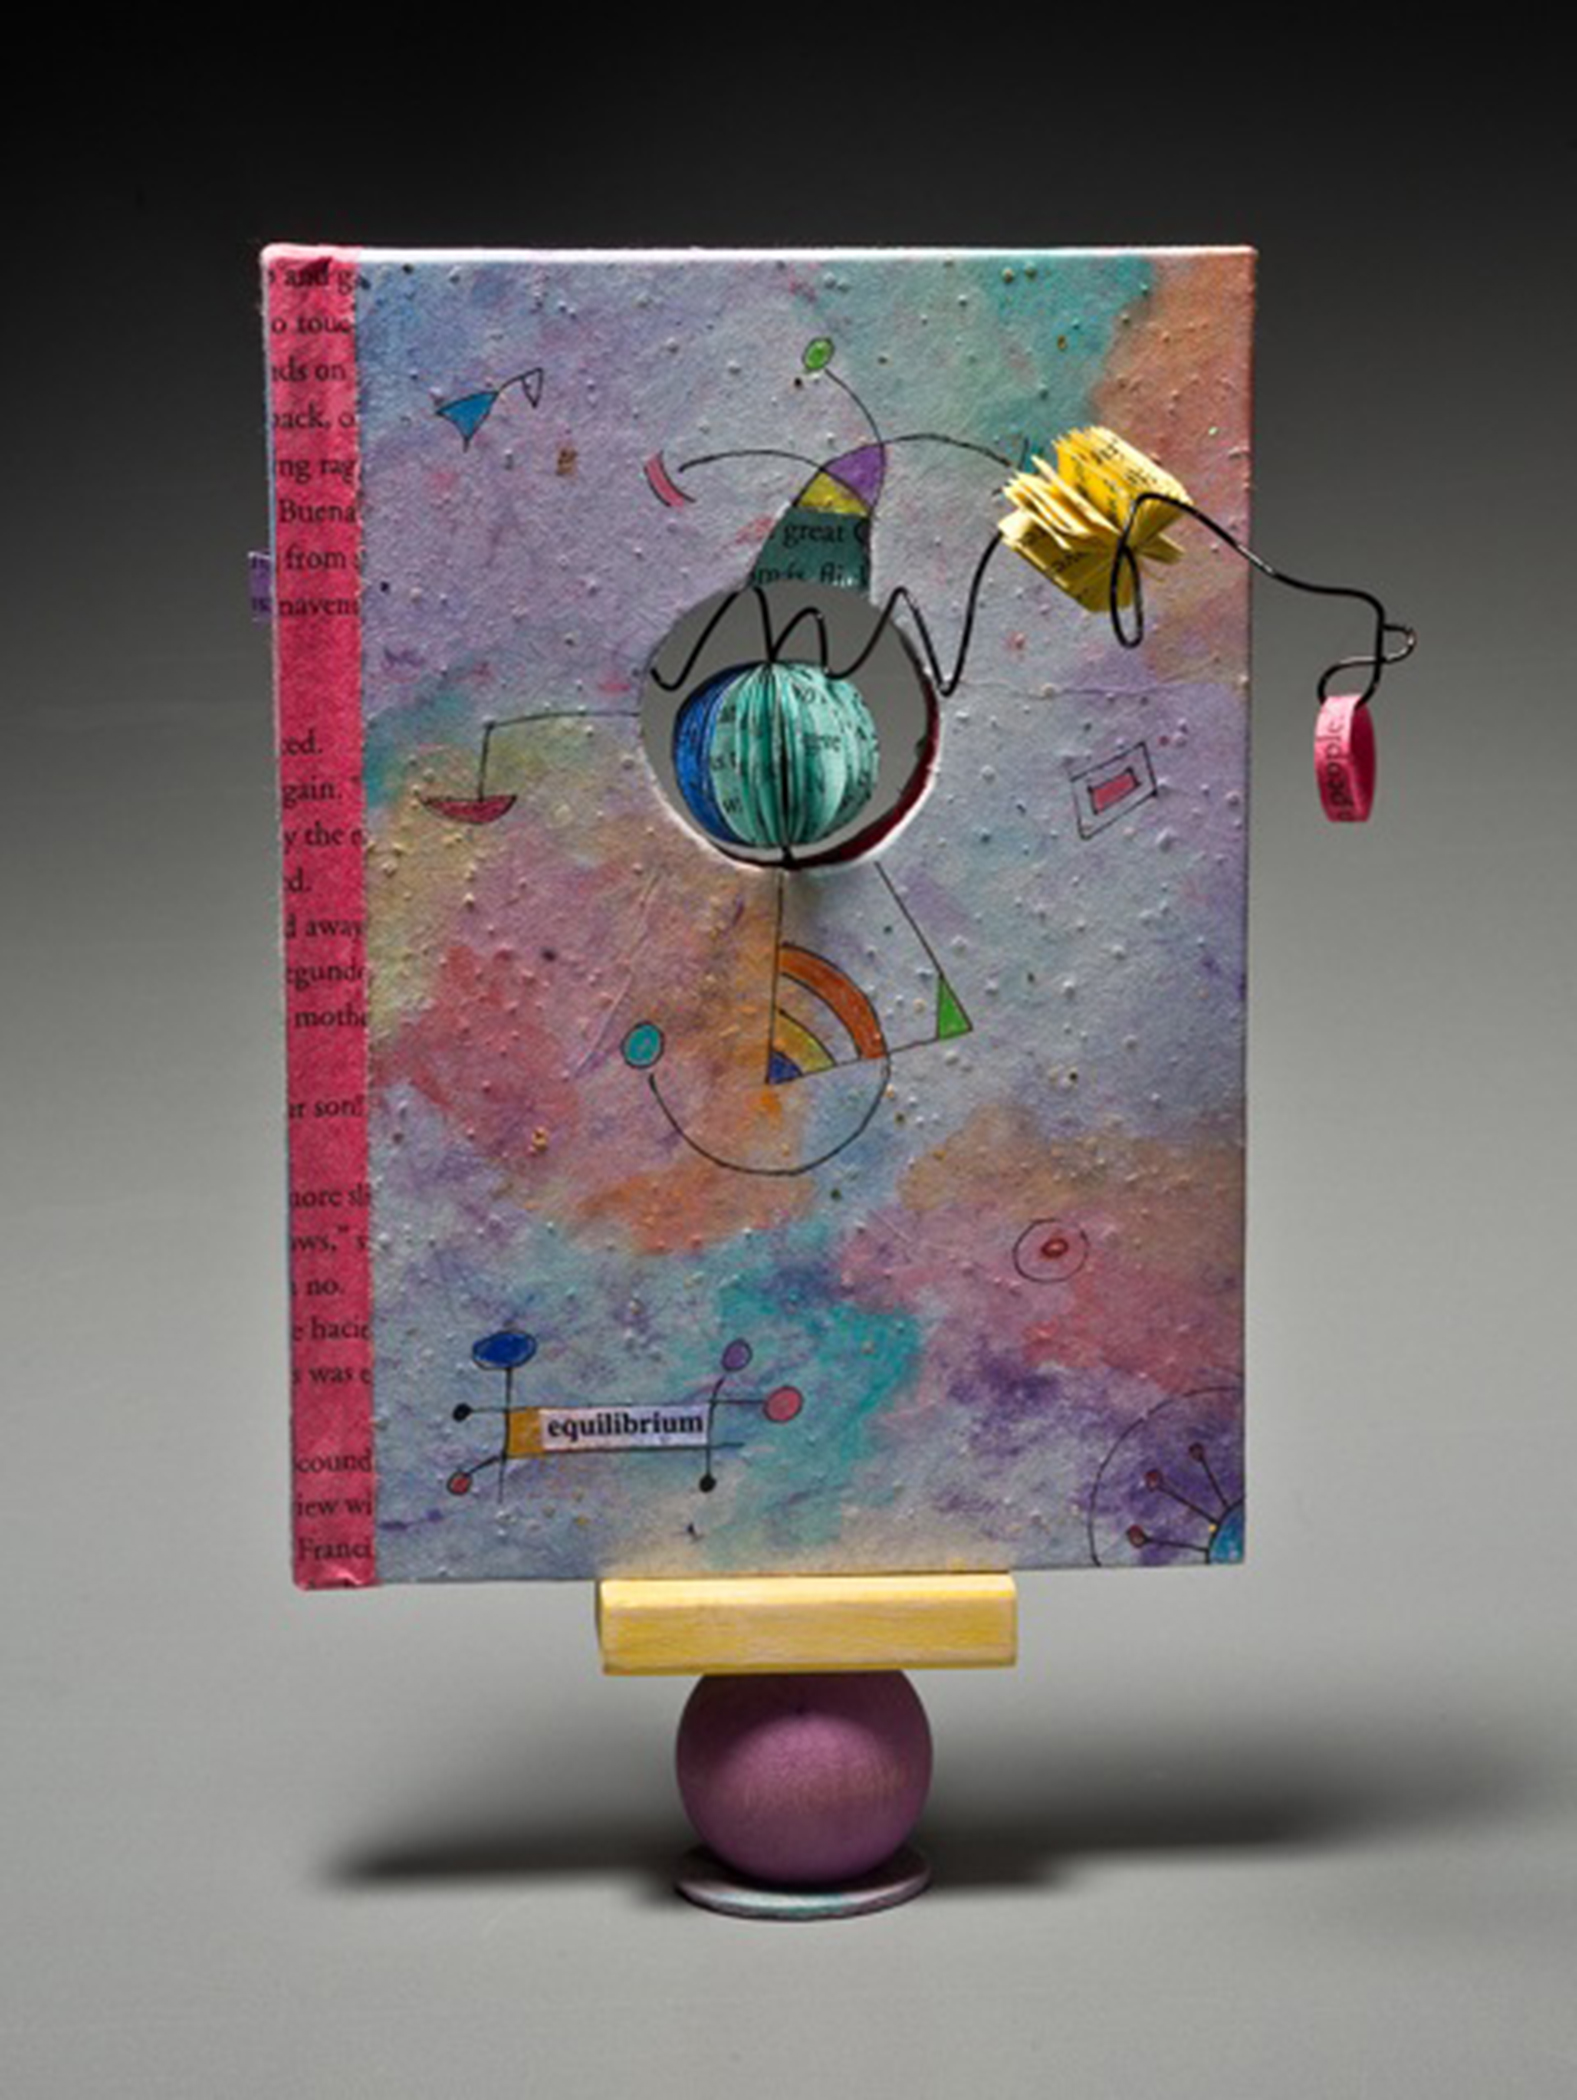 Jean-Marie Tarascio, The Art of Hanging in the Balance, Altered discarded book, acrylics, wood